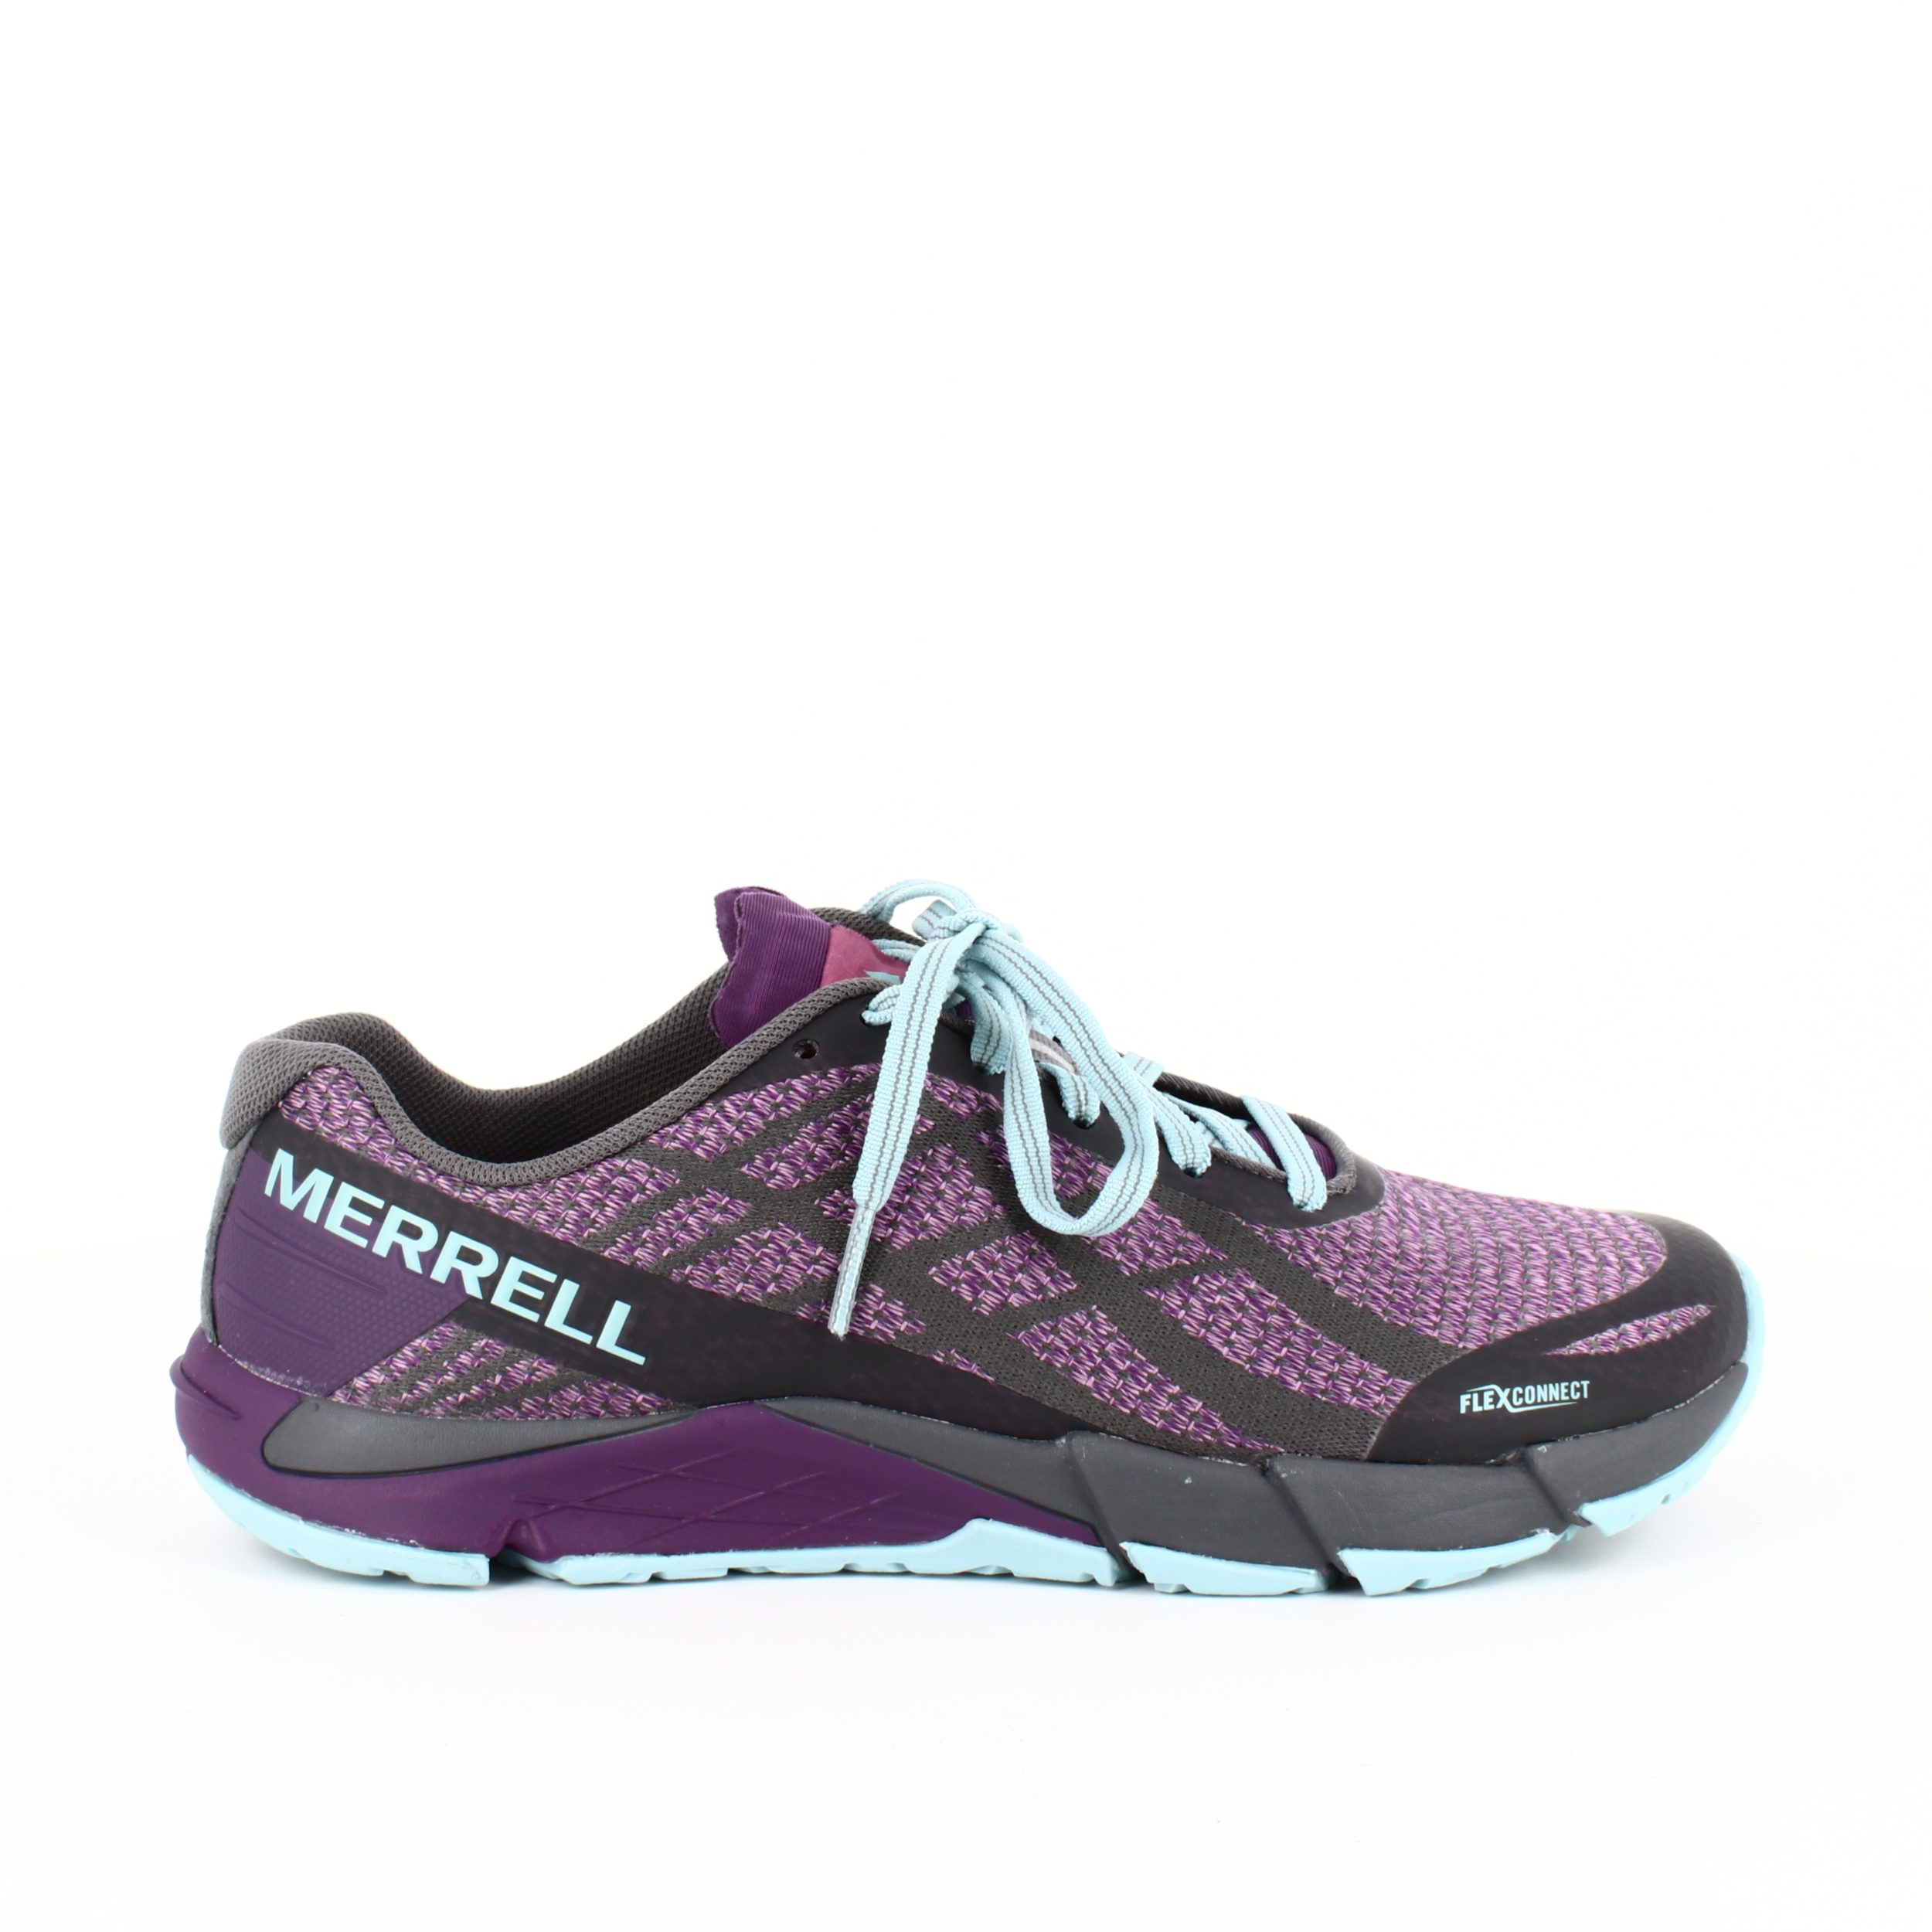 Image of   Merrell sneakers med flex shield og bare foot teknologi - 42